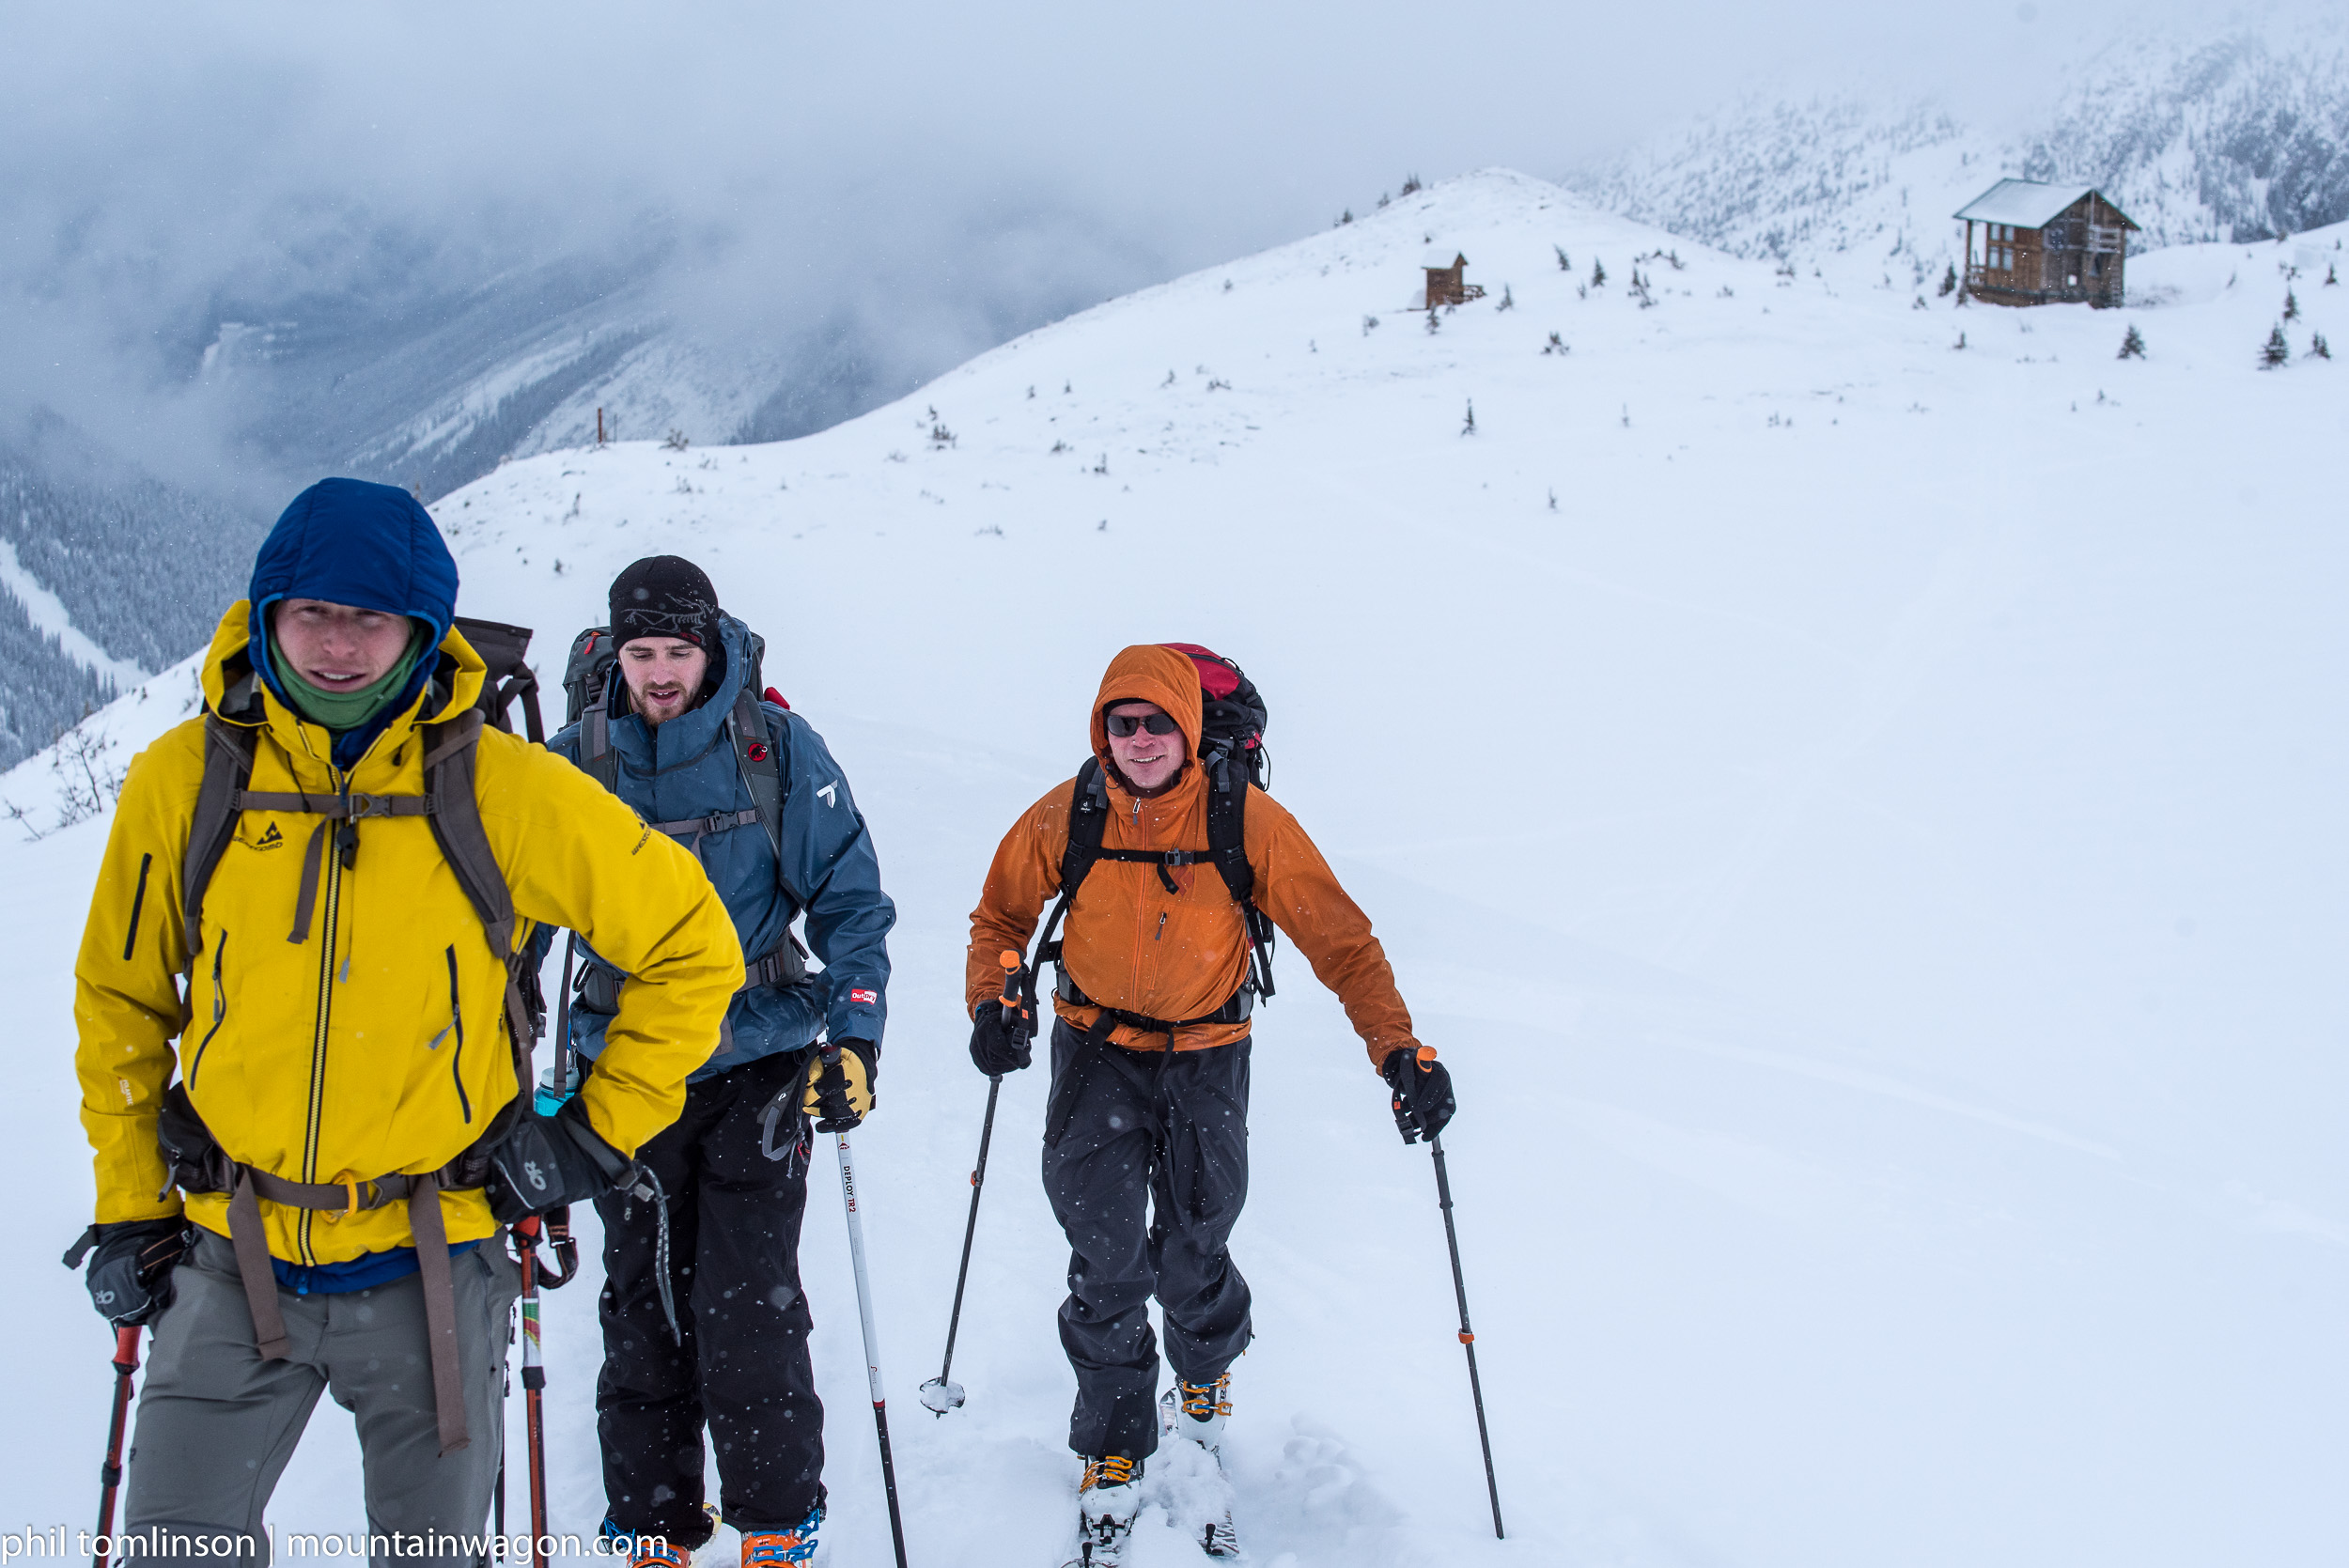 Darren, Tyler and Paul touring up from the Asulkan Hut